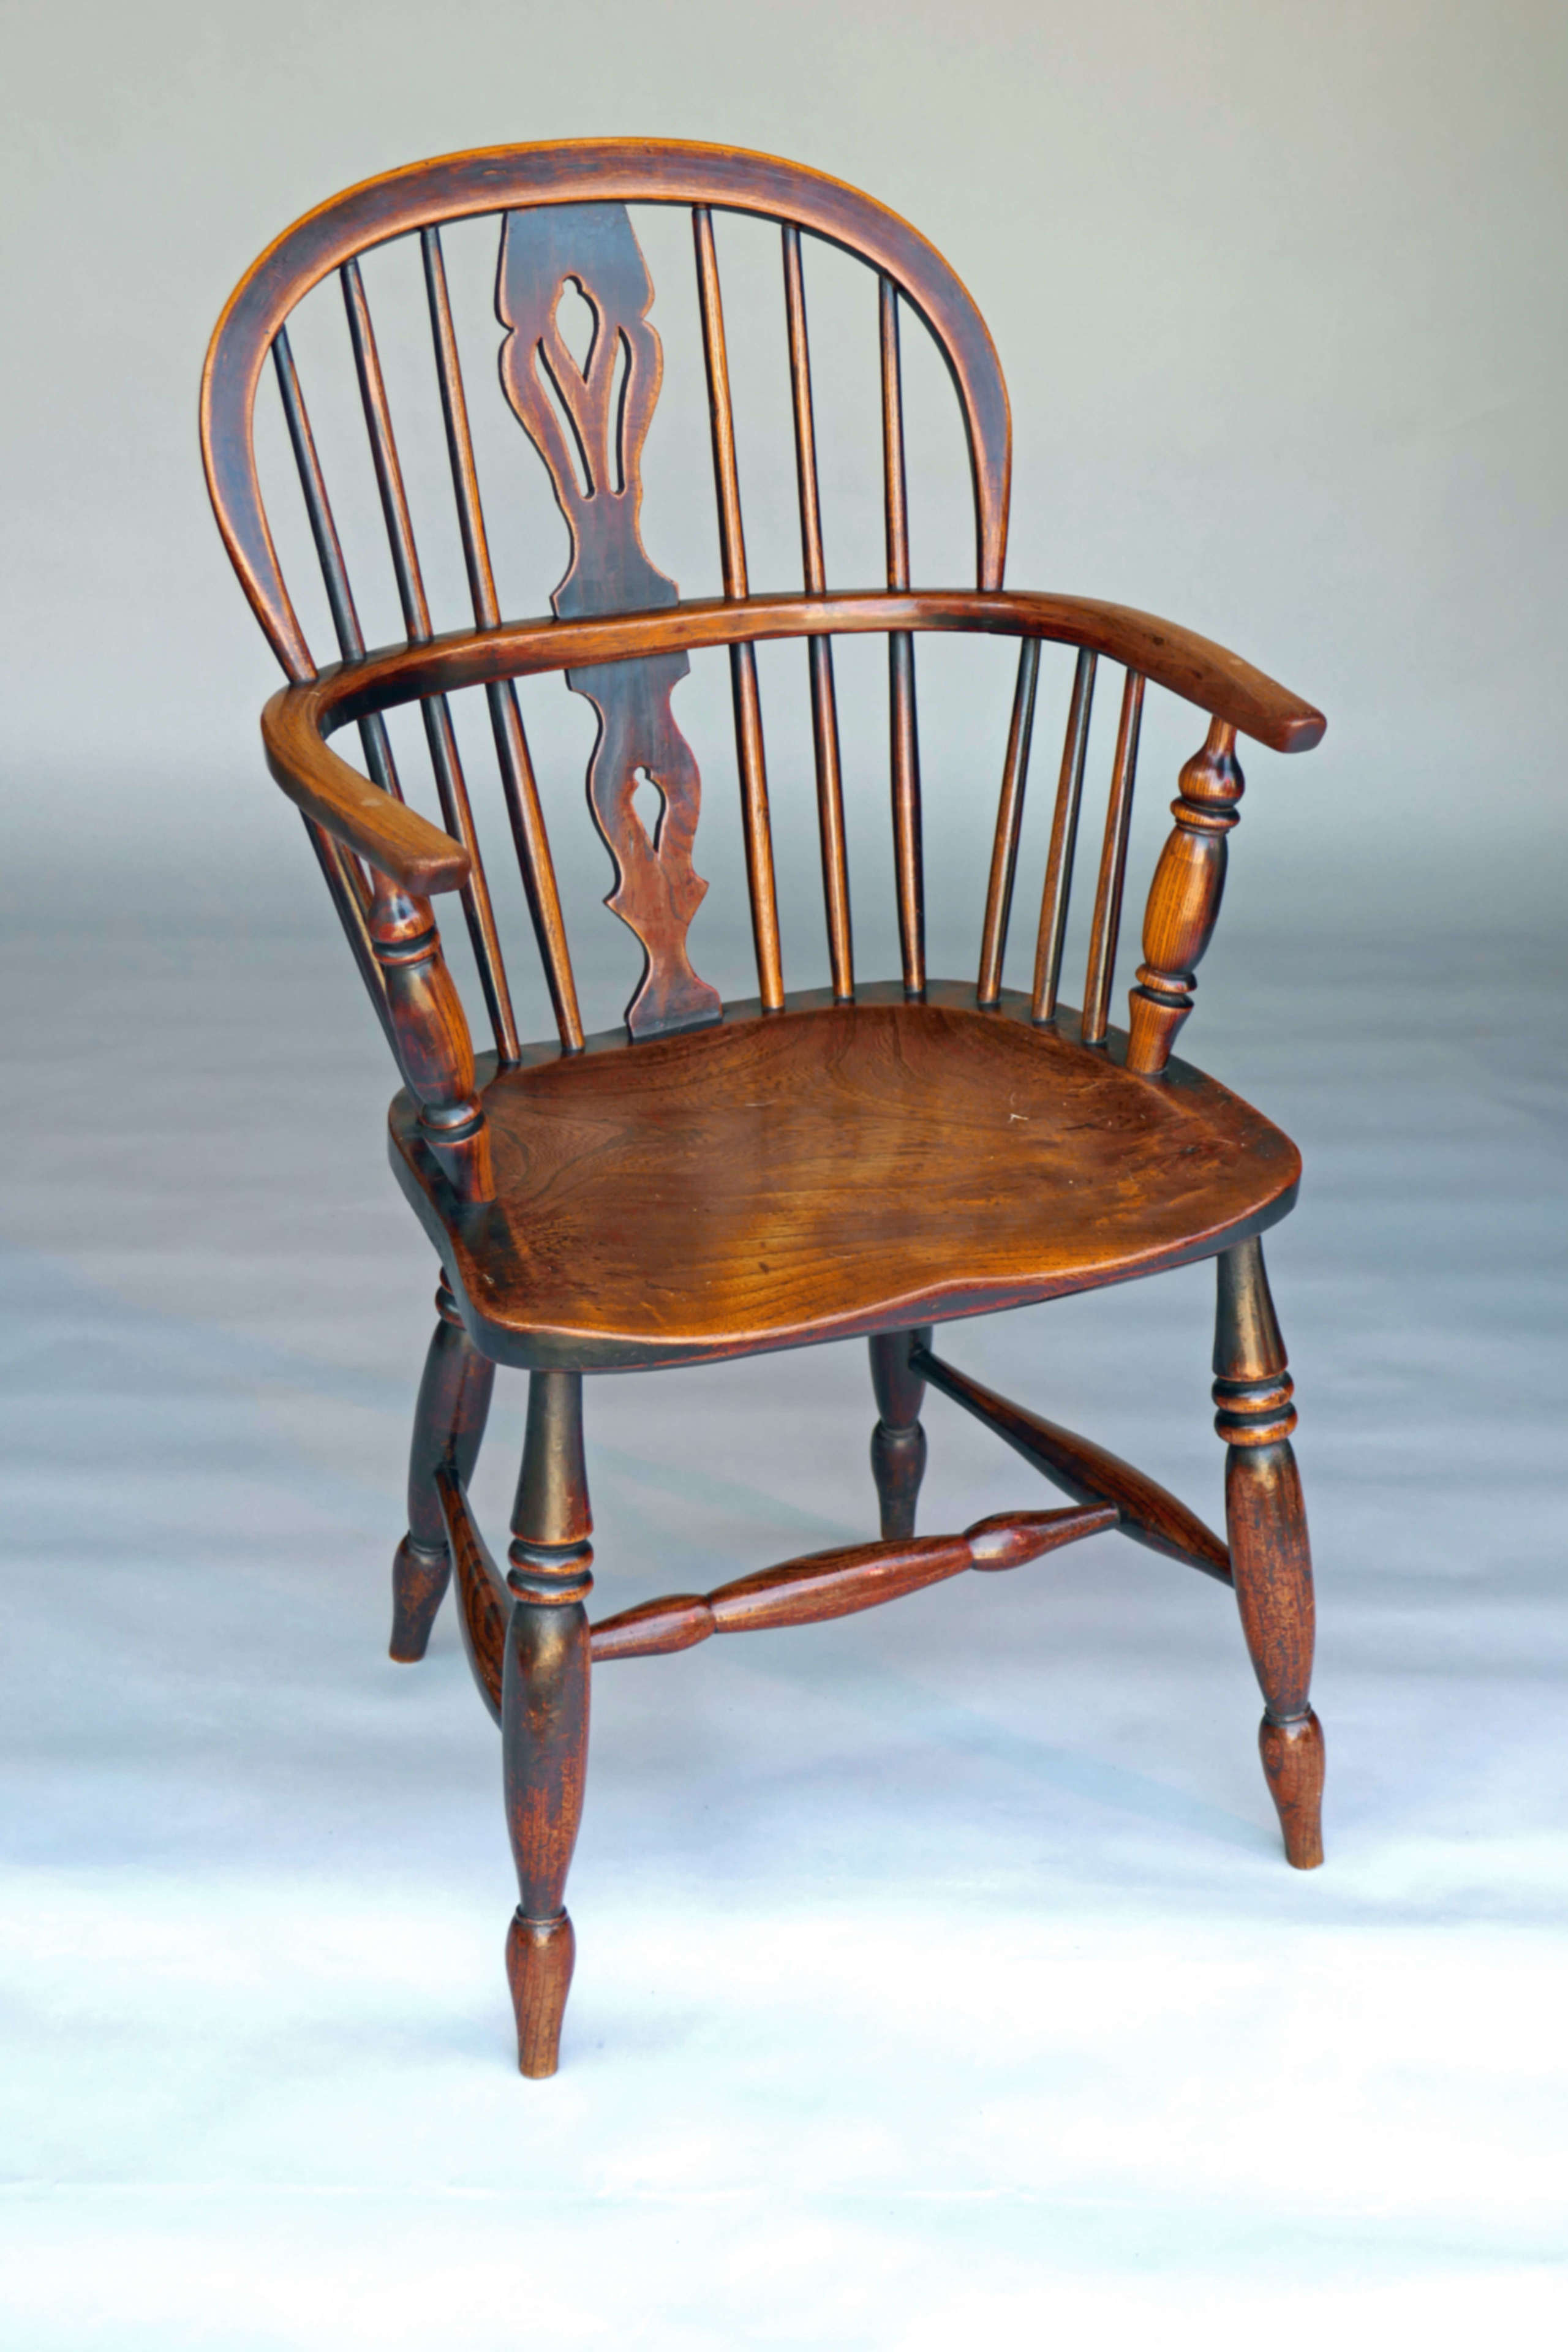 Antique 19thc Country Furniture Windsor Low Back Armchair In Elm & Ash